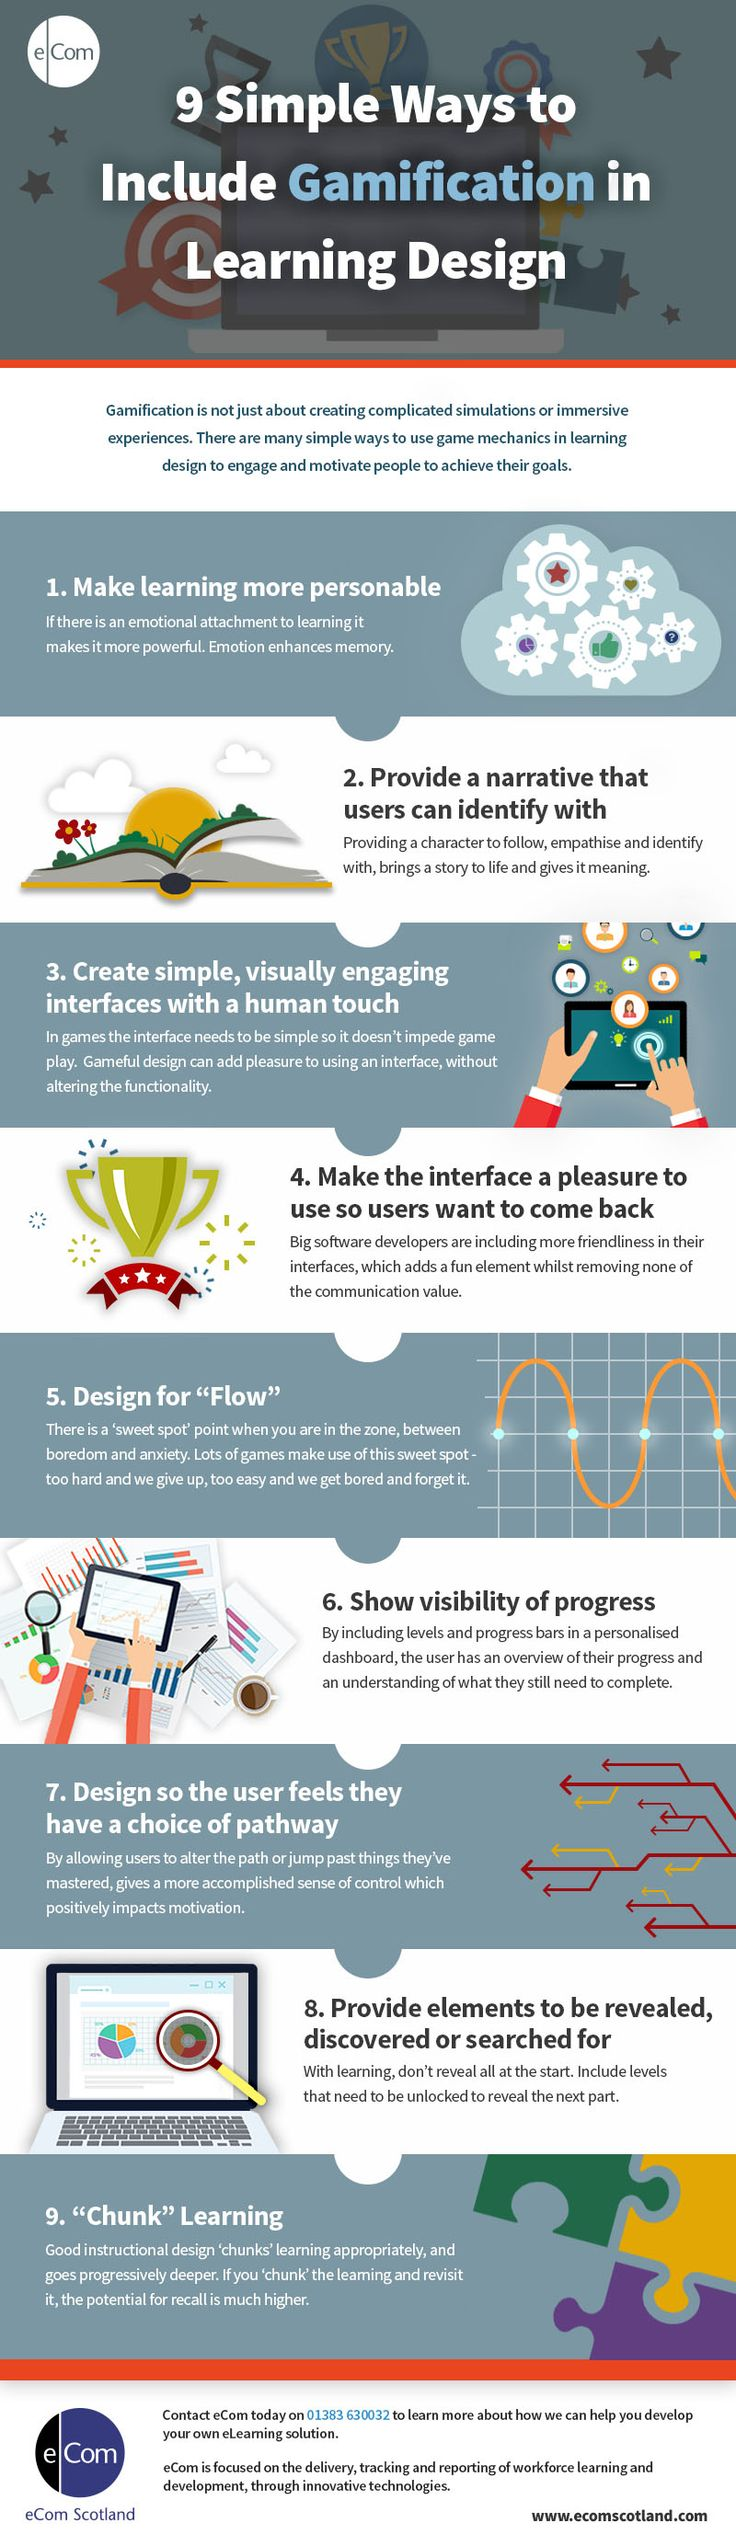 5 Ways to Learn Web Design - wikiHow